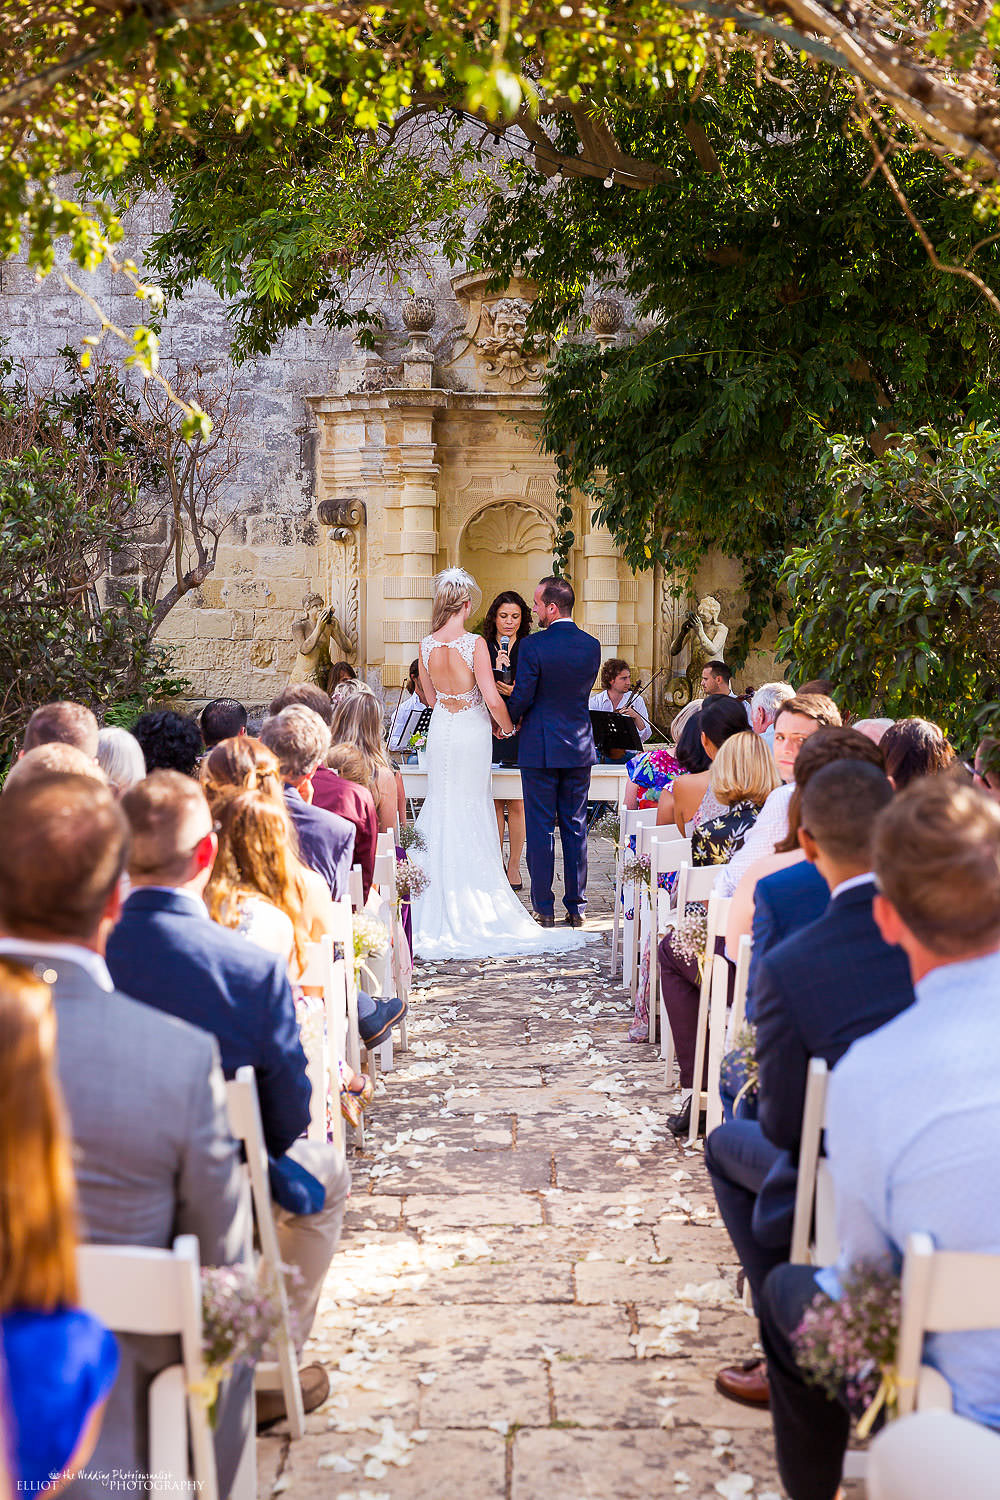 Destination wedding ceremony within the Baroque gardens at Villa Bologna, Malta.